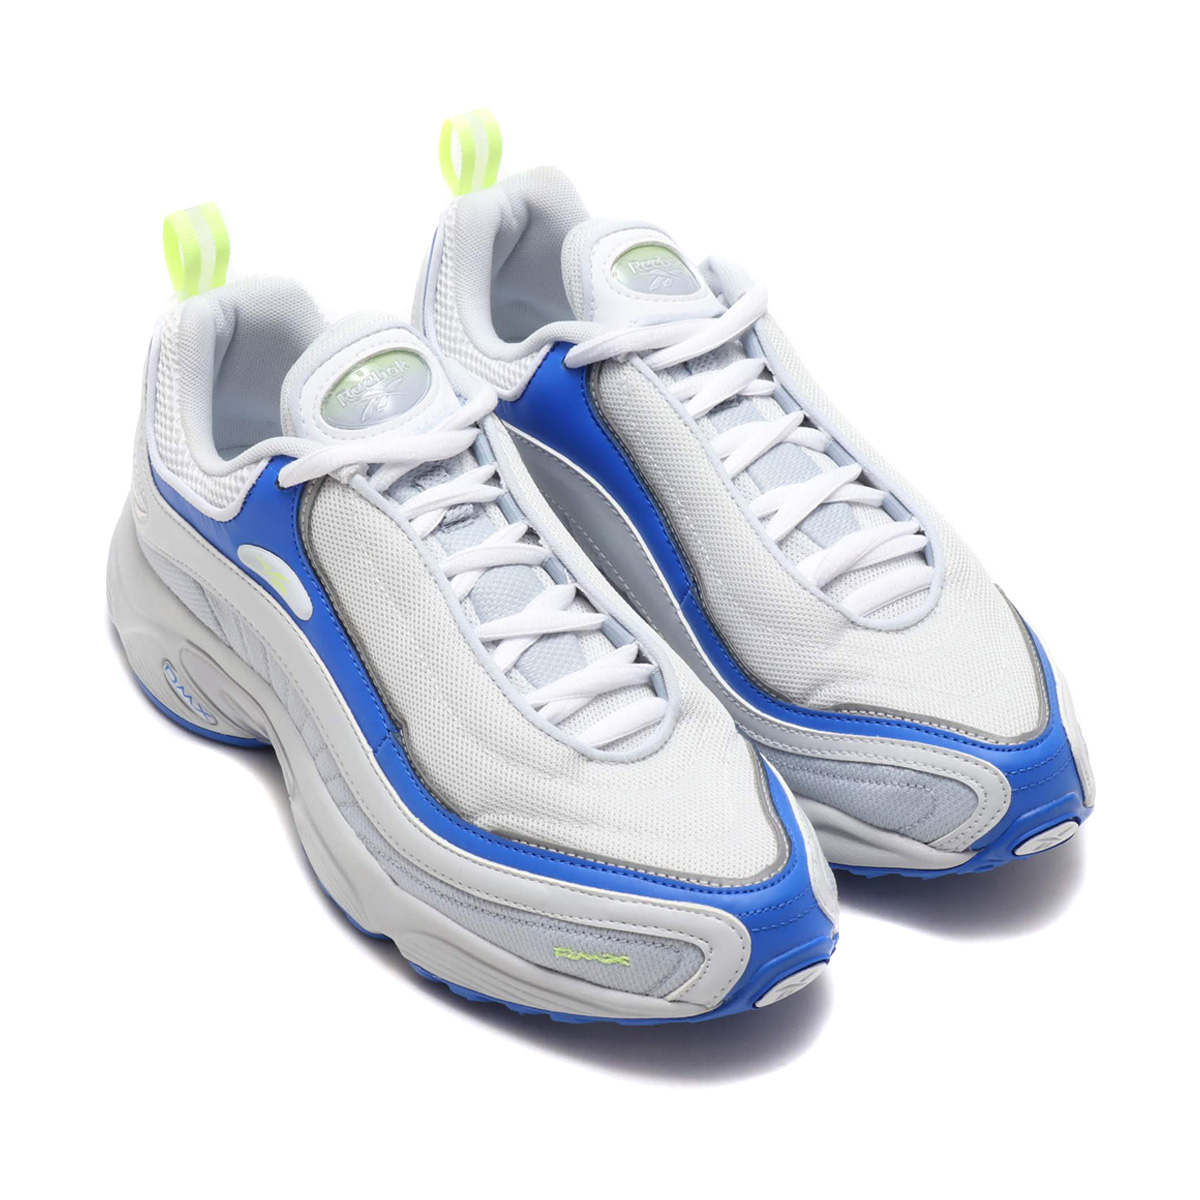 Reebok DAYTONA DMX SC (リーボック デイトナ DMX SC) (SPIRIT WHITE/WHITE/CLOUD GRAY/VITAL BLUE/LEMON)18FA-I